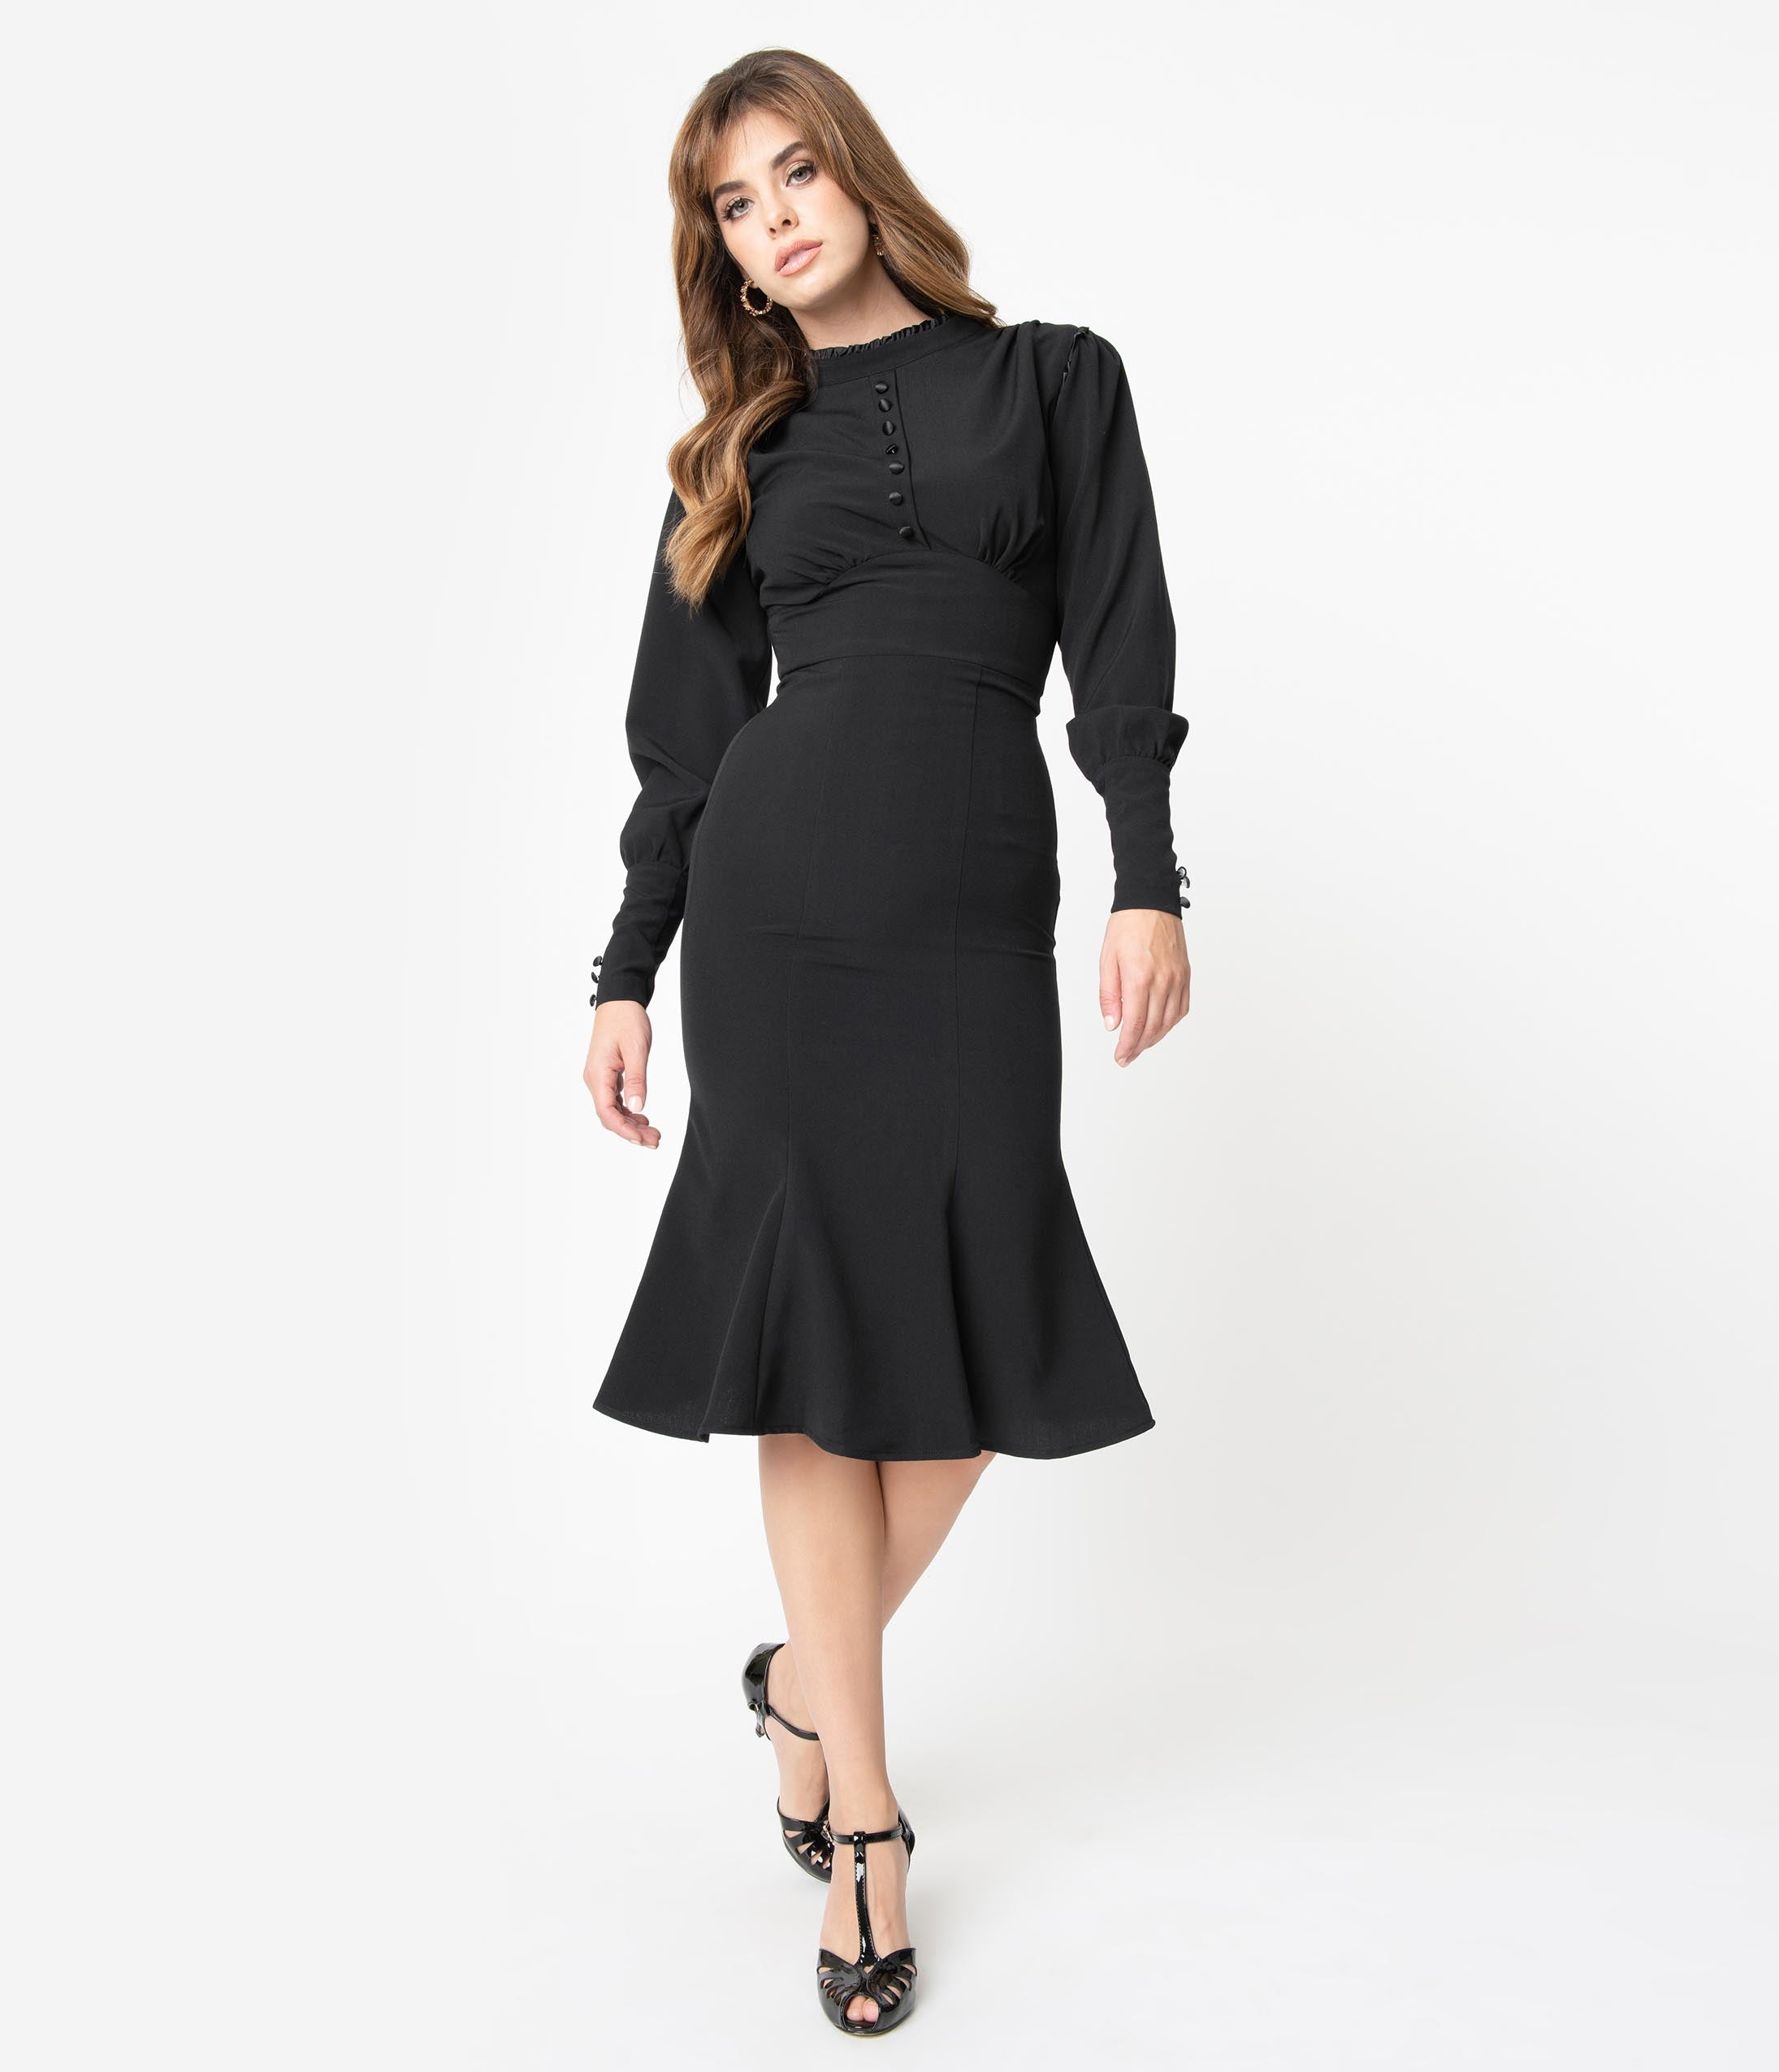 What Did Women Wear in the 1940s? 40s Fashion Trends Stop Staring 1940S Black Maritza Fishtail Wiggle Dress $172.00 AT vintagedancer.com